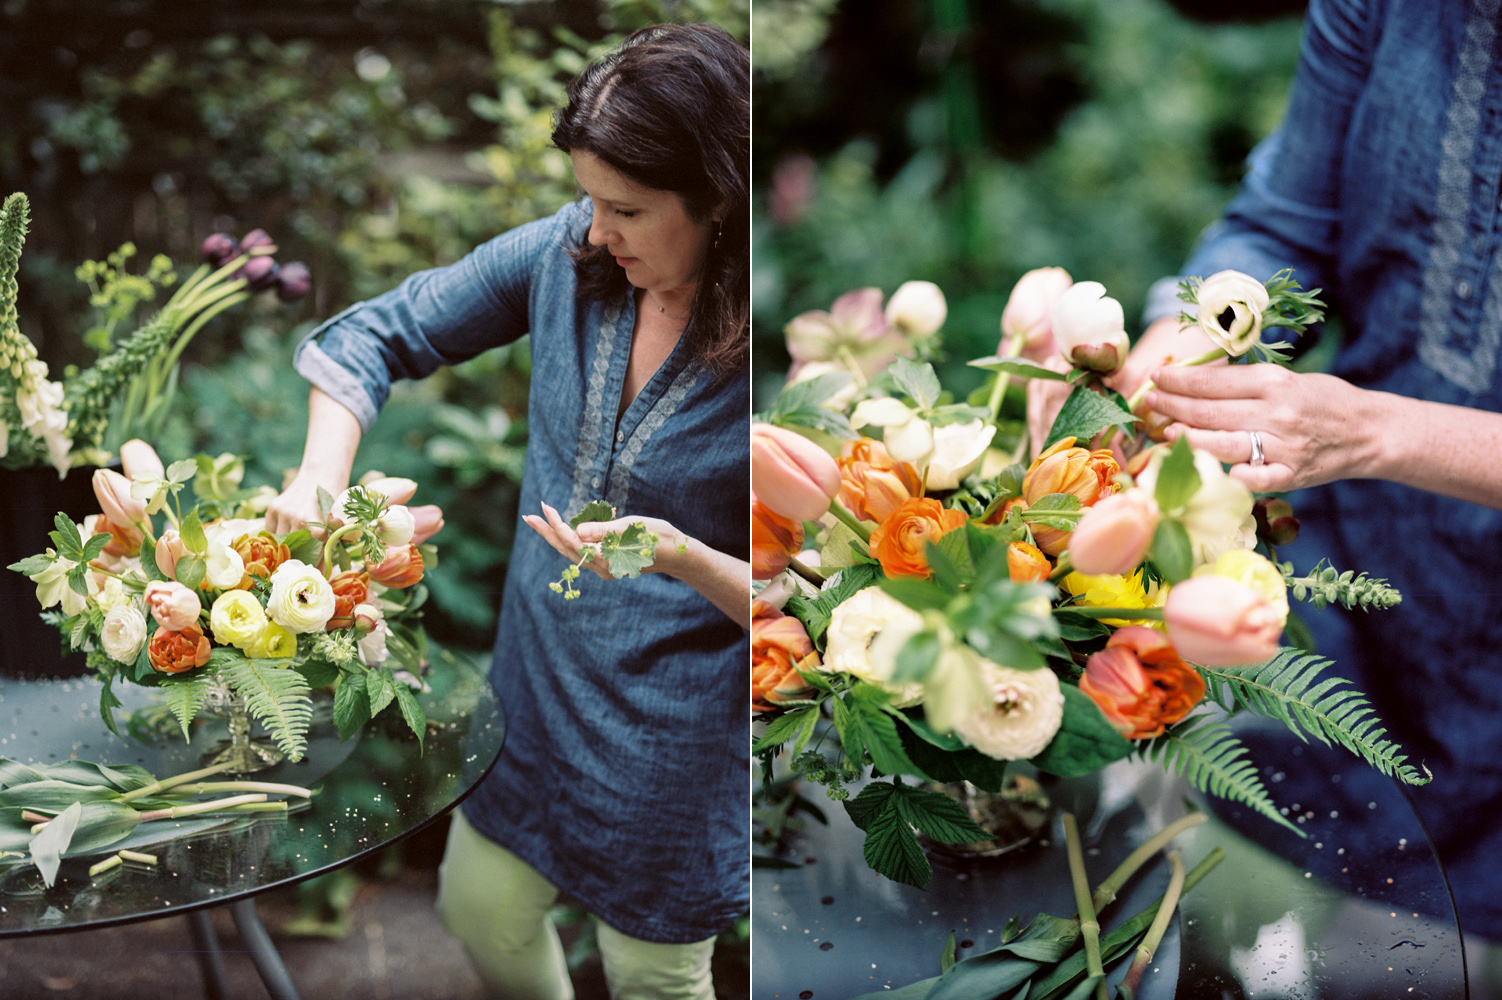 seattle florist with yellow and orange flowers.jpg